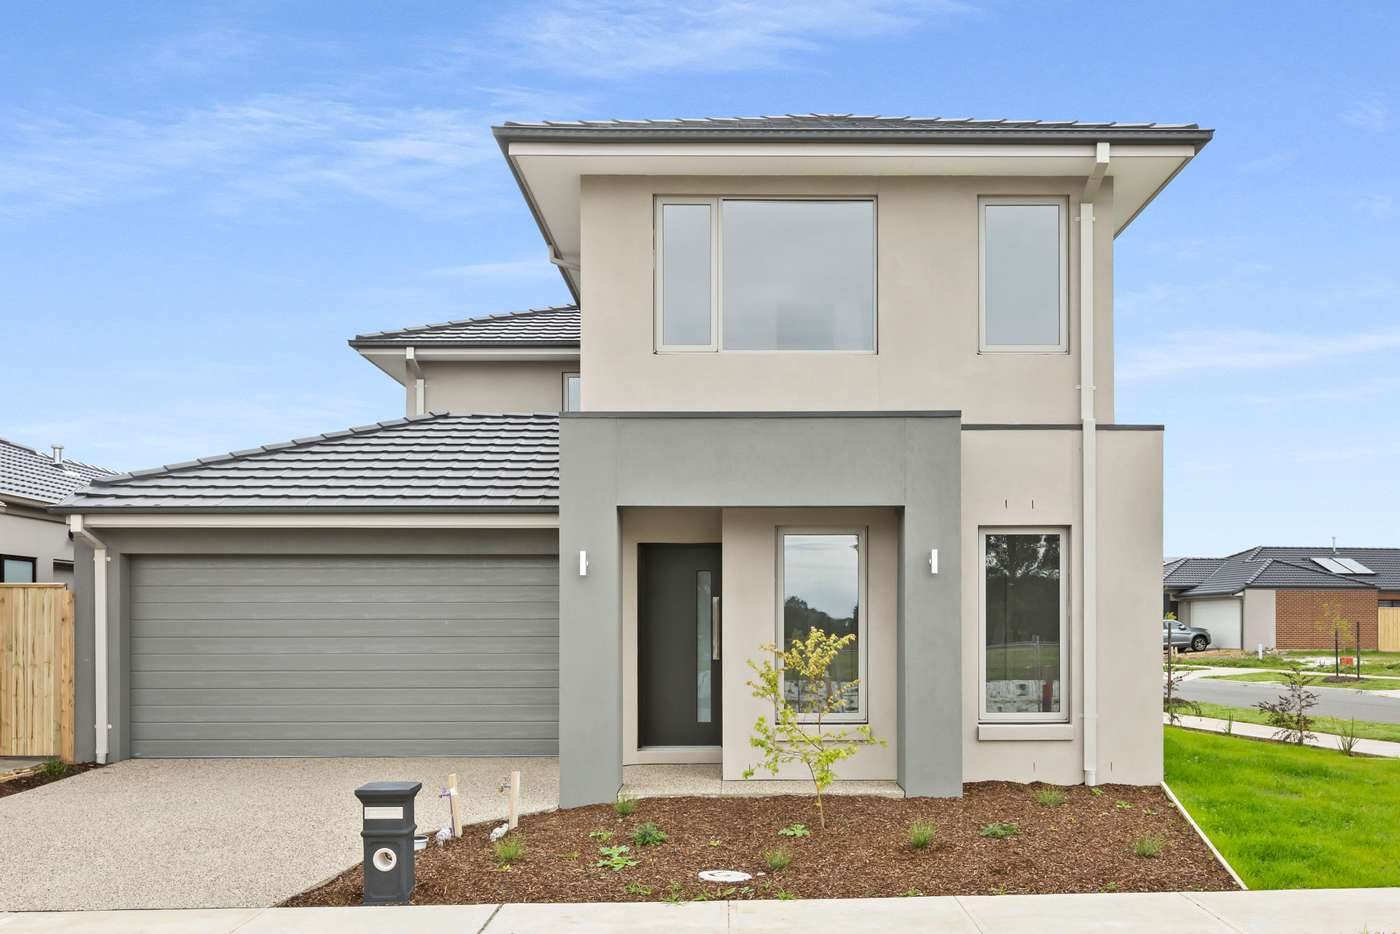 Main view of Homely house listing, 1 Abacus Lane, Cranbourne South VIC 3977